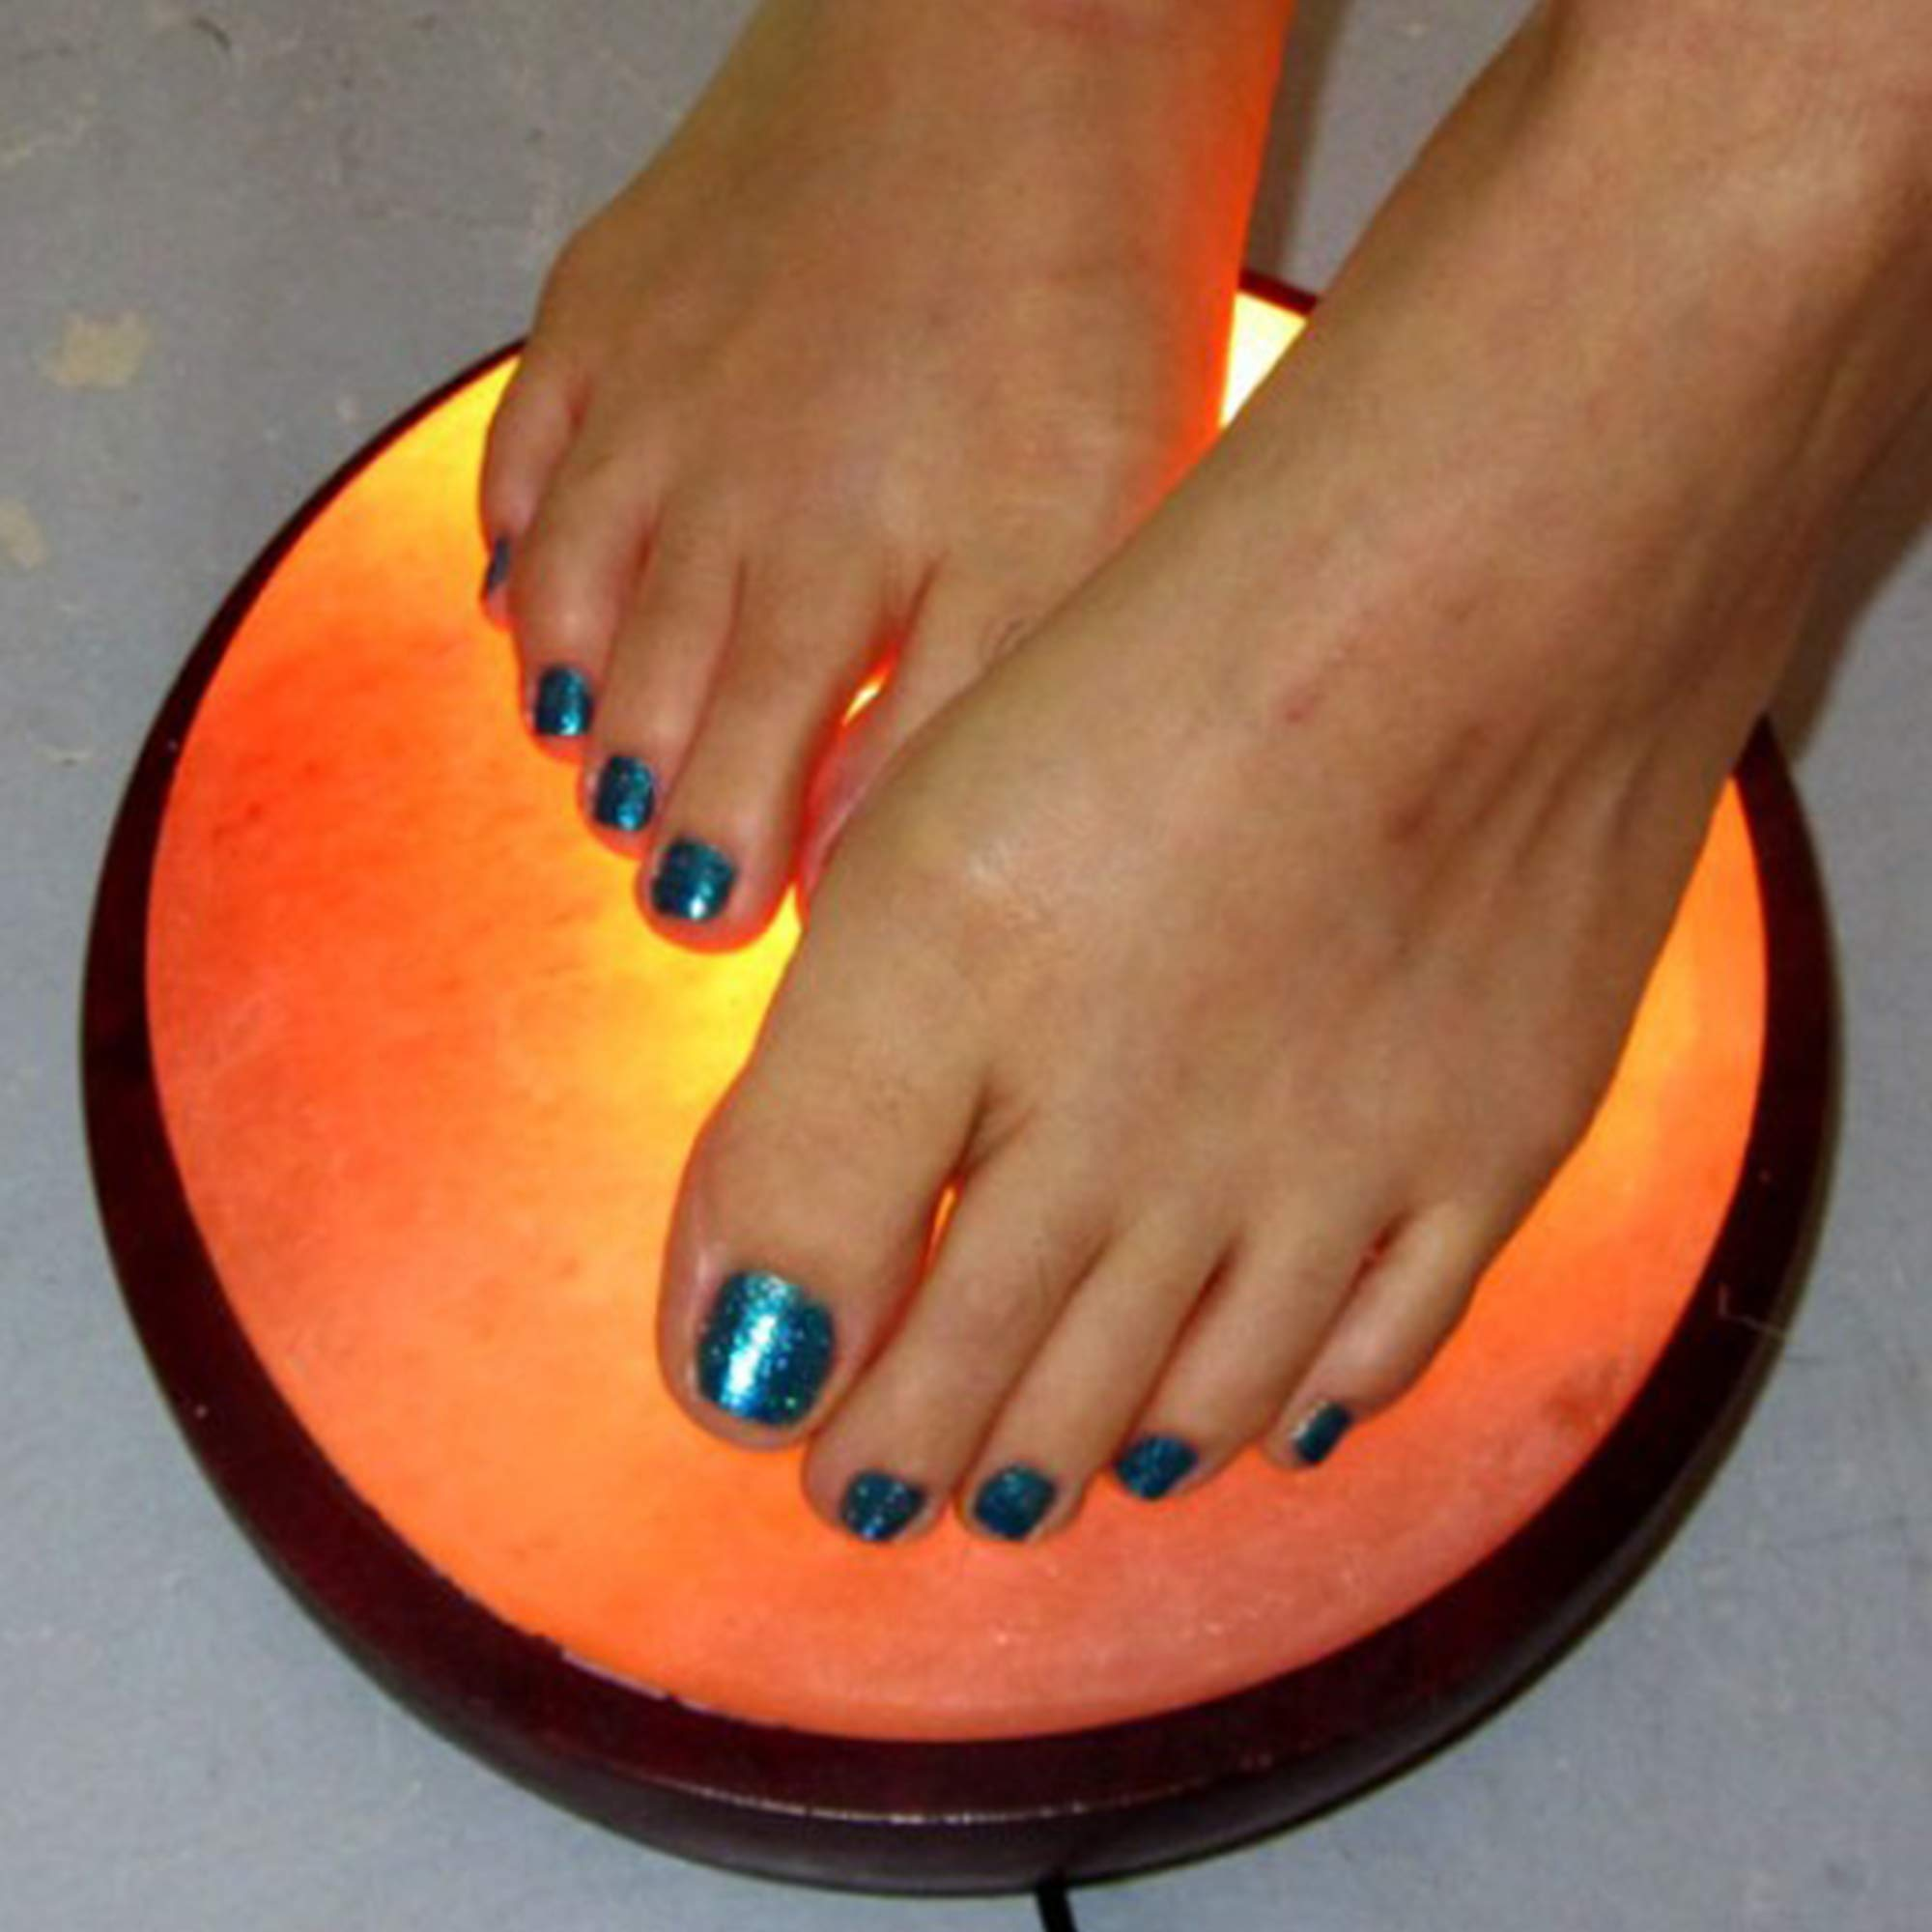 Himalayan Foot Detox Dome Salt Lamp | Remove Toxins & Relax Tired & Achy Feet | 8-11lbs by Himalayan Glow (Image #5)